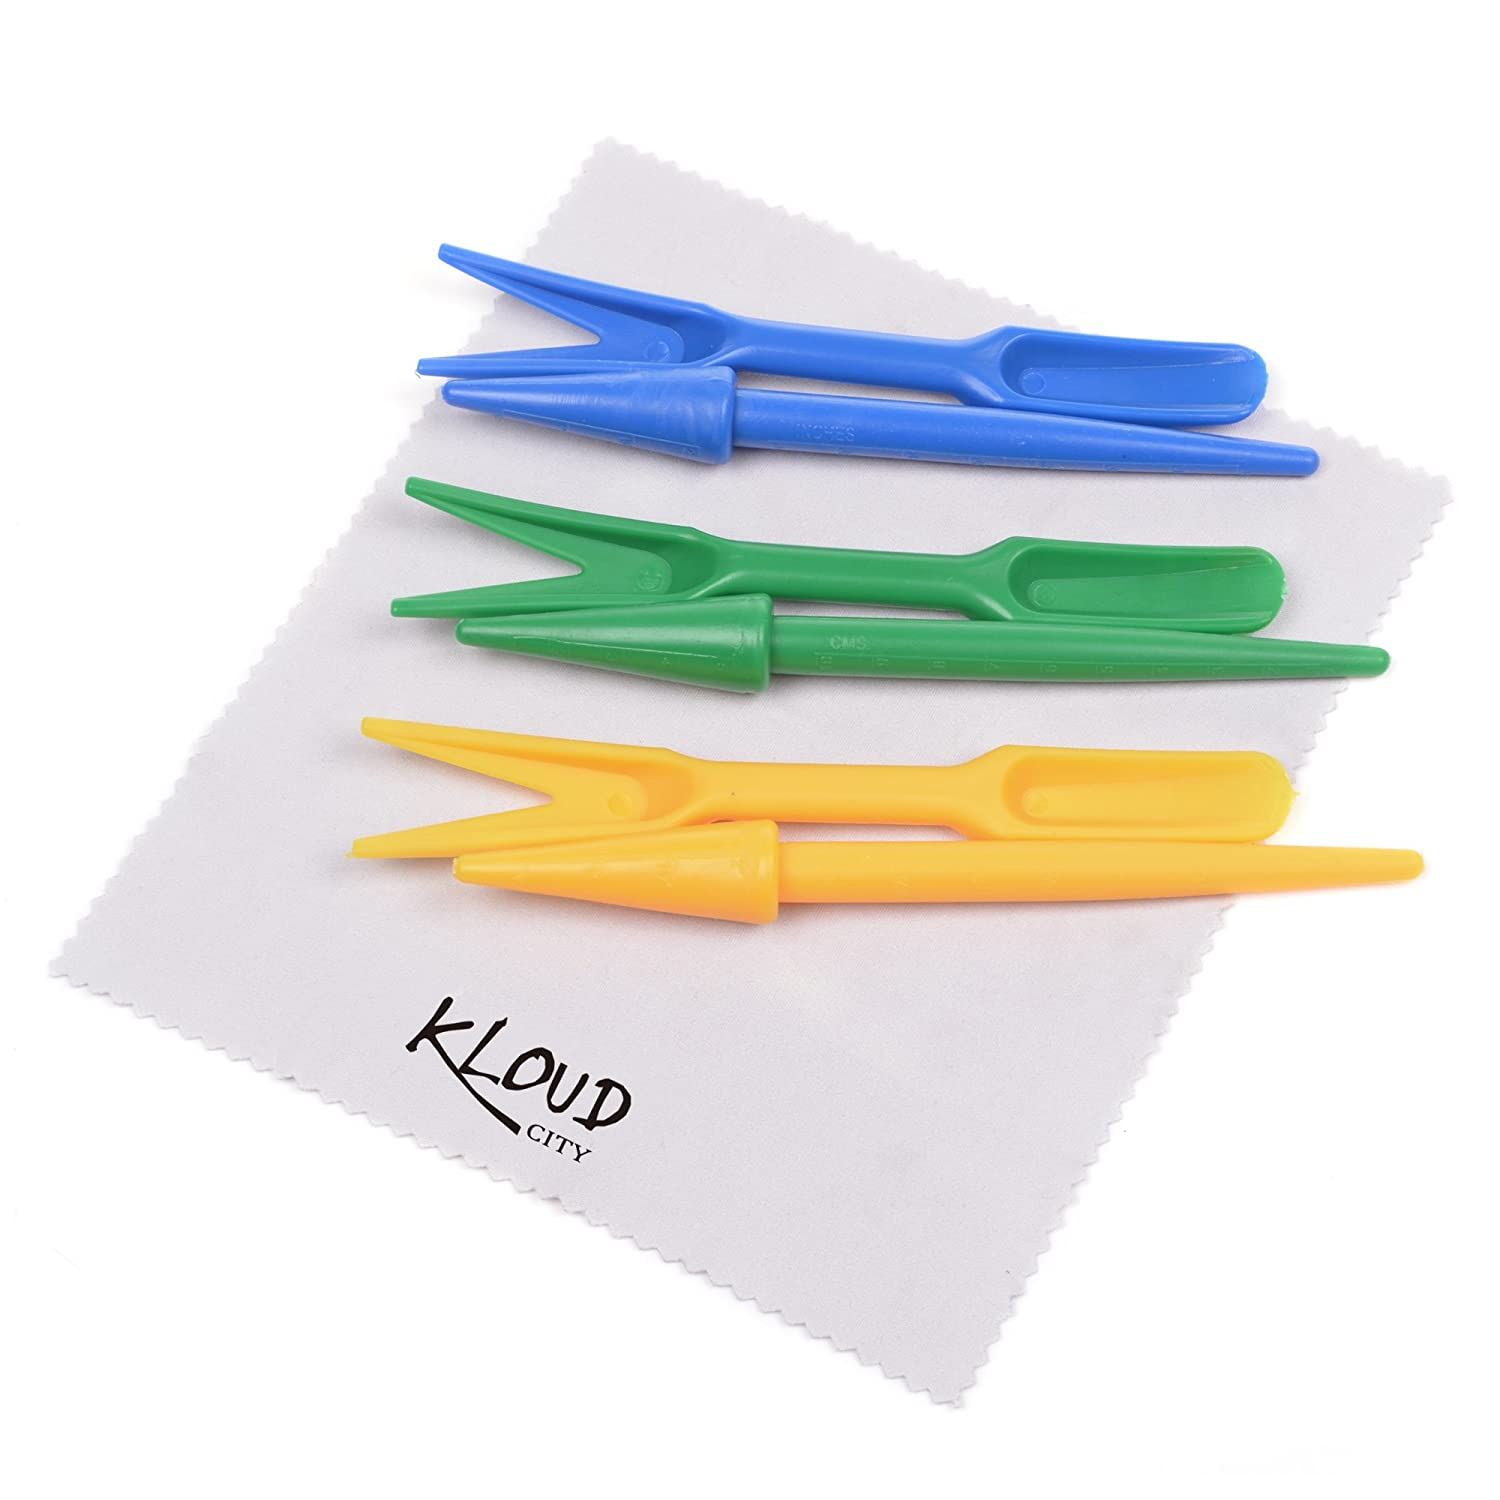 KLOUD City® 3 Sets Succulent Transplanting Mini Tools-Seed Dibbers plus Small Shovels for Transplanting Seedling (Green Blue Yellow)